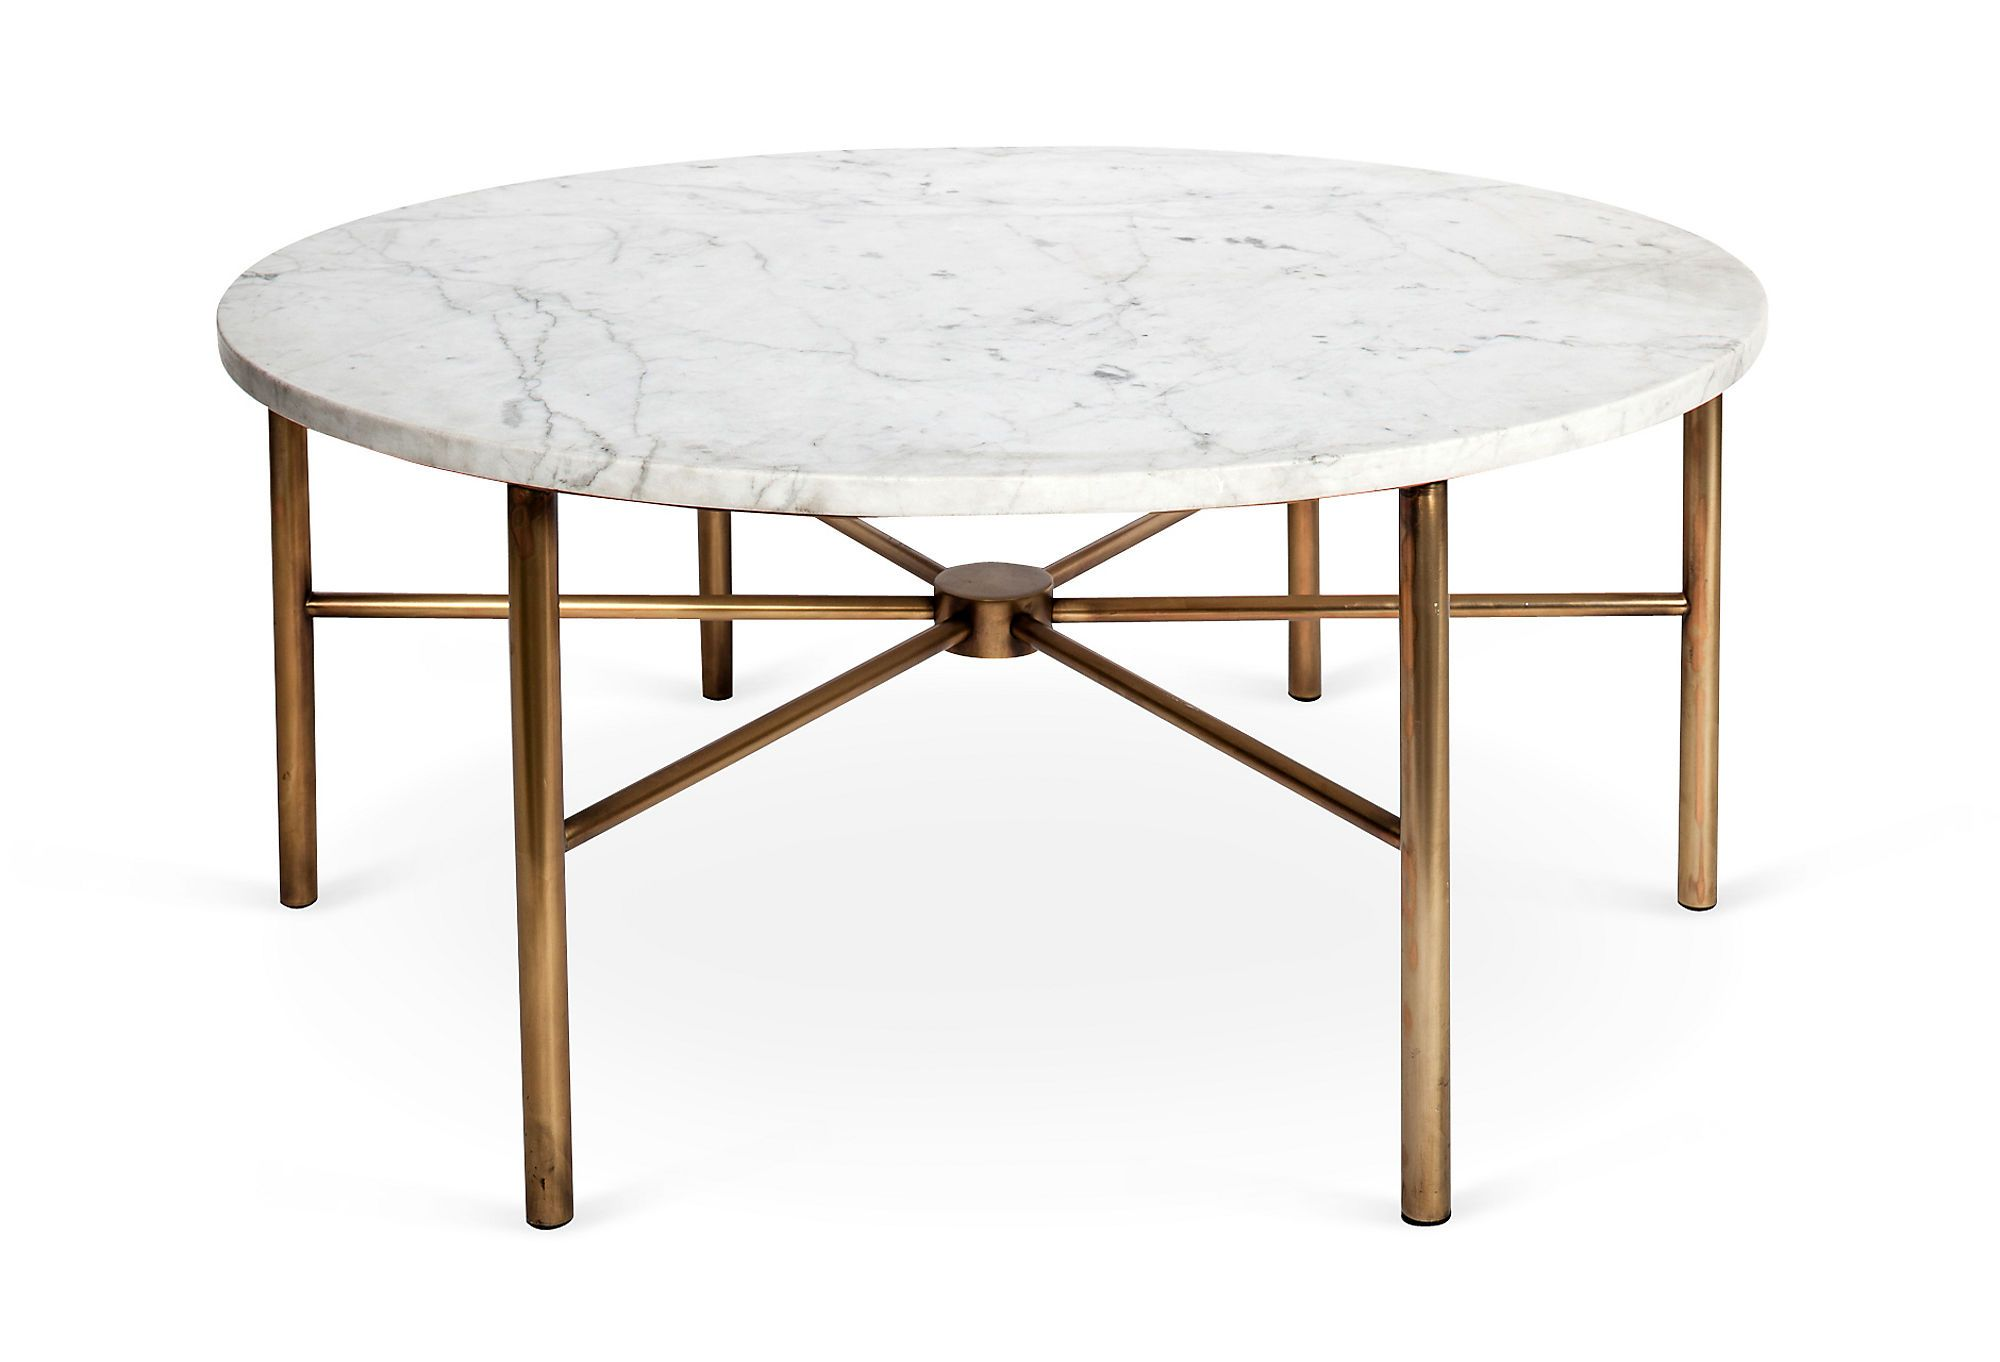 James lane marble coffee table round contemporary minimalist